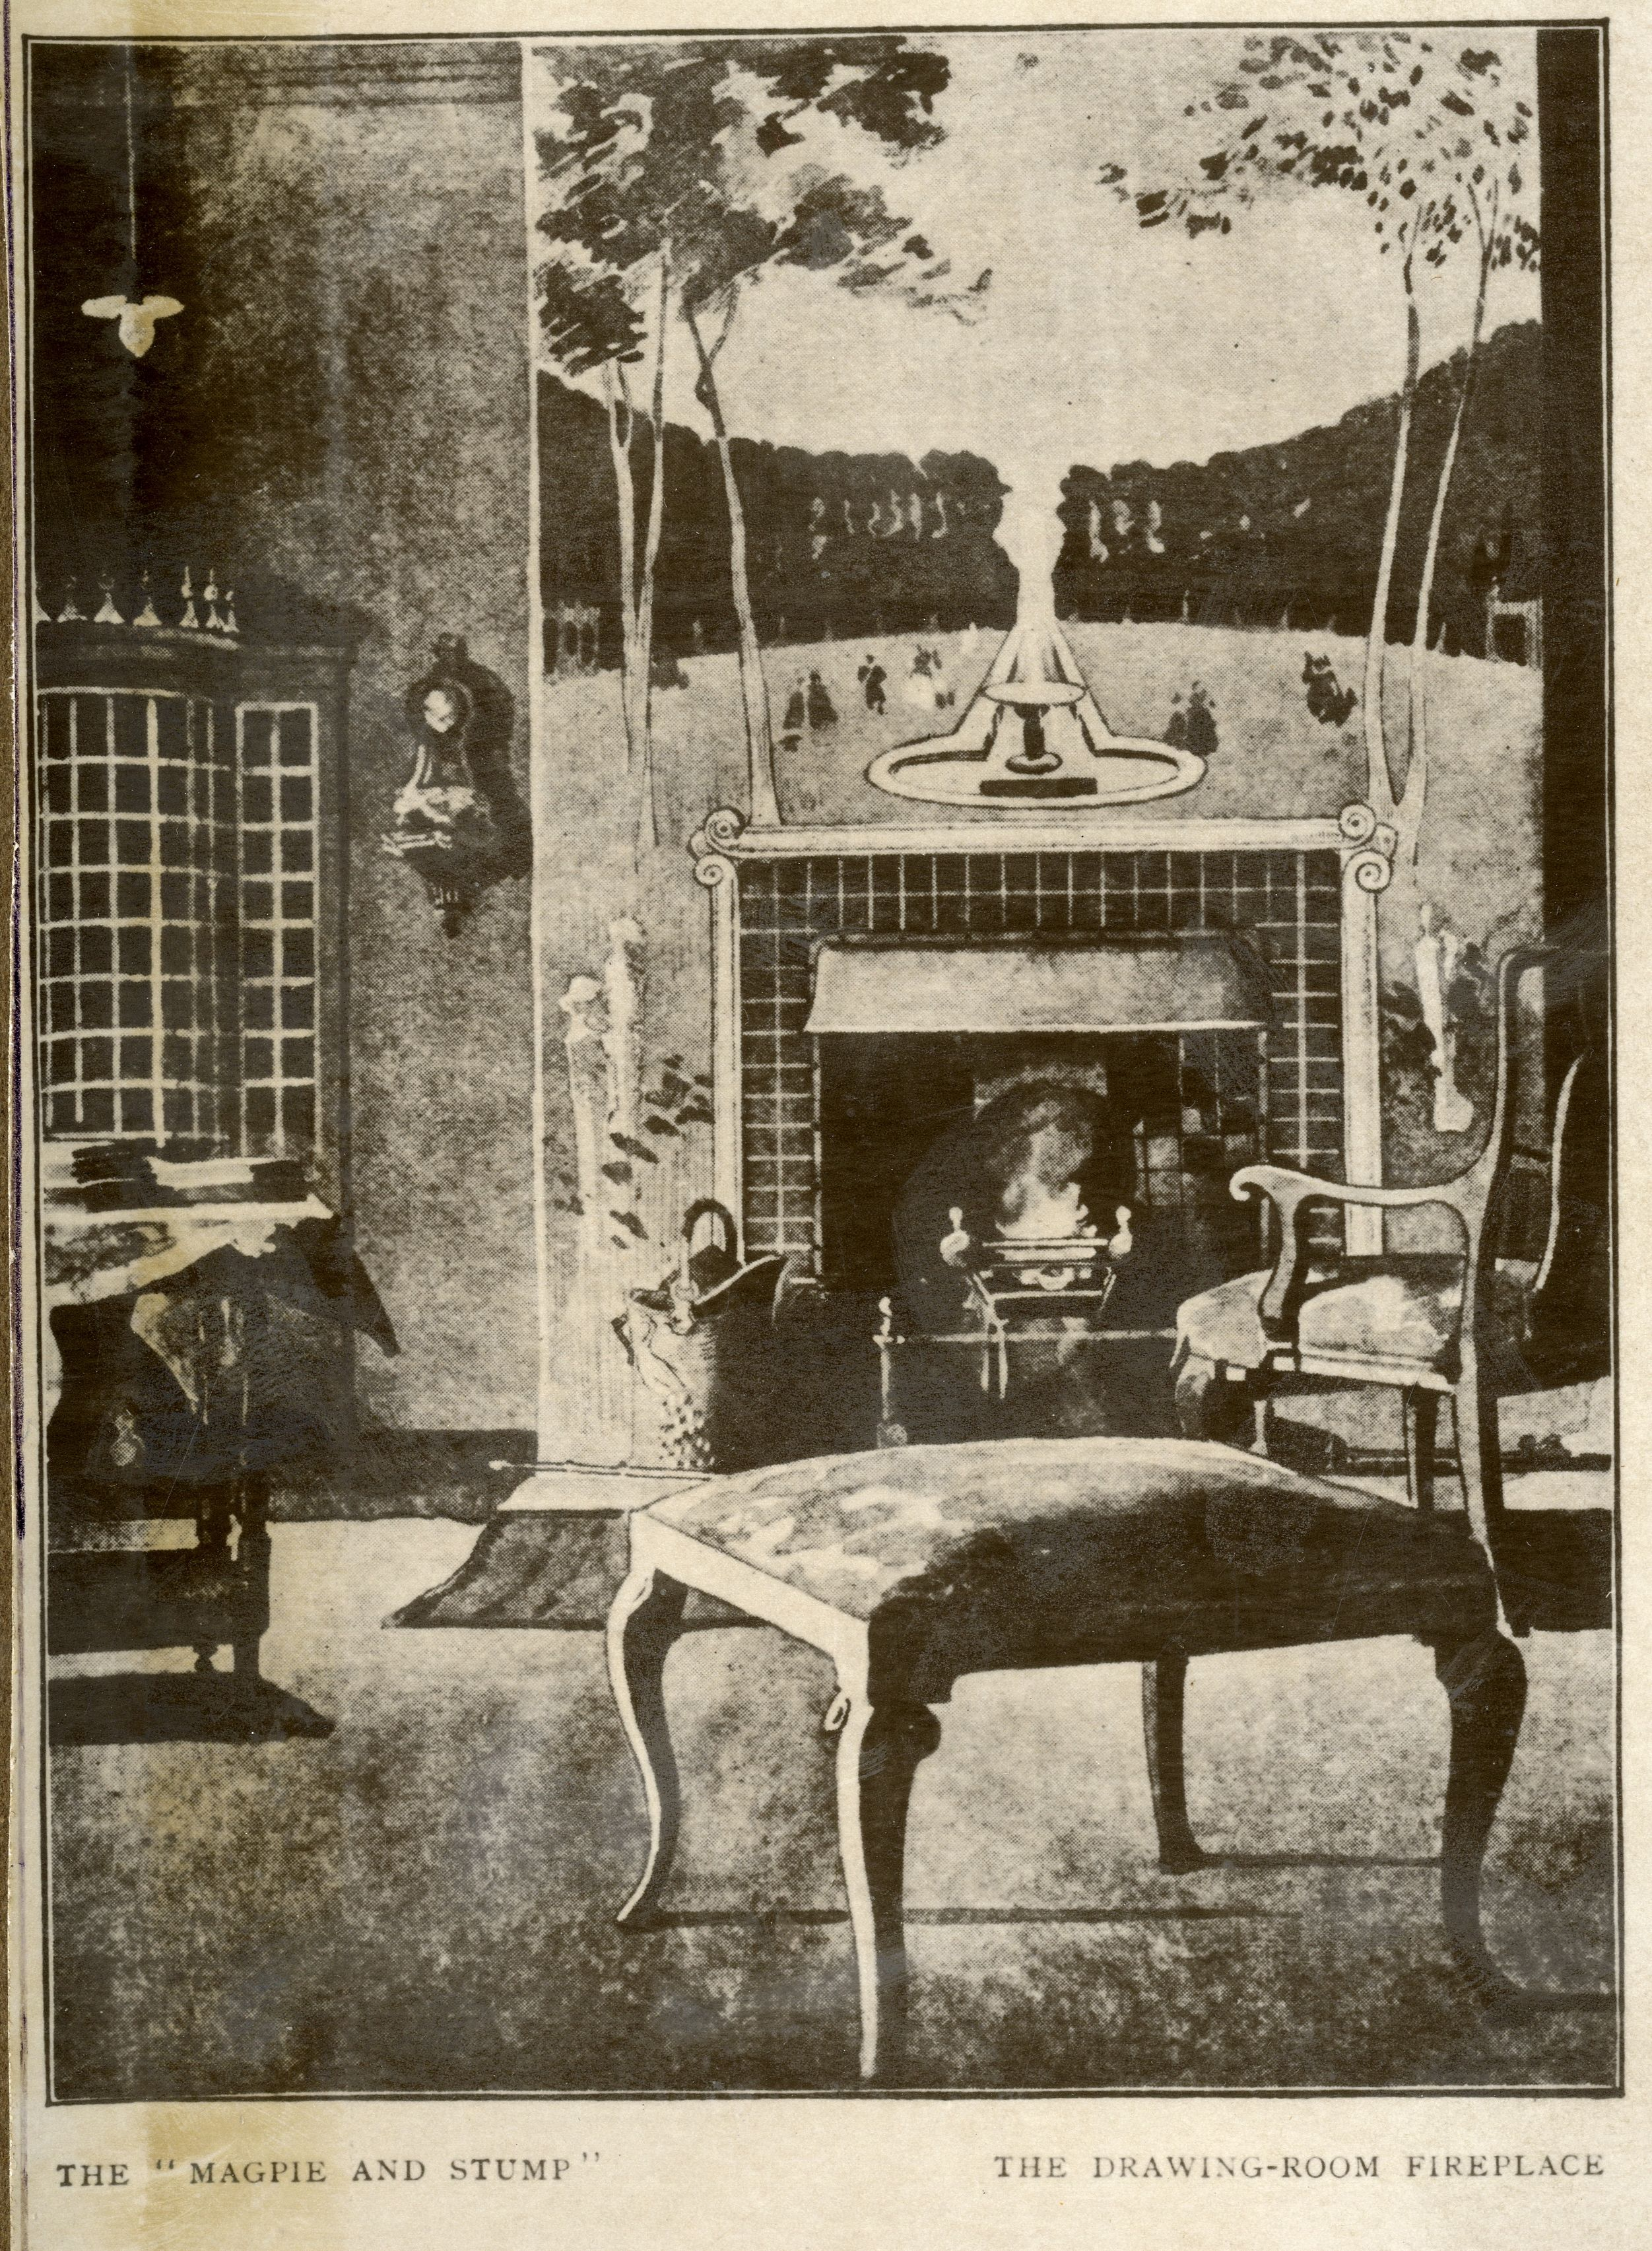 Roger Fry's wall painting in Ashbee's home, 'Magpie and Stump'. [CRA/23]